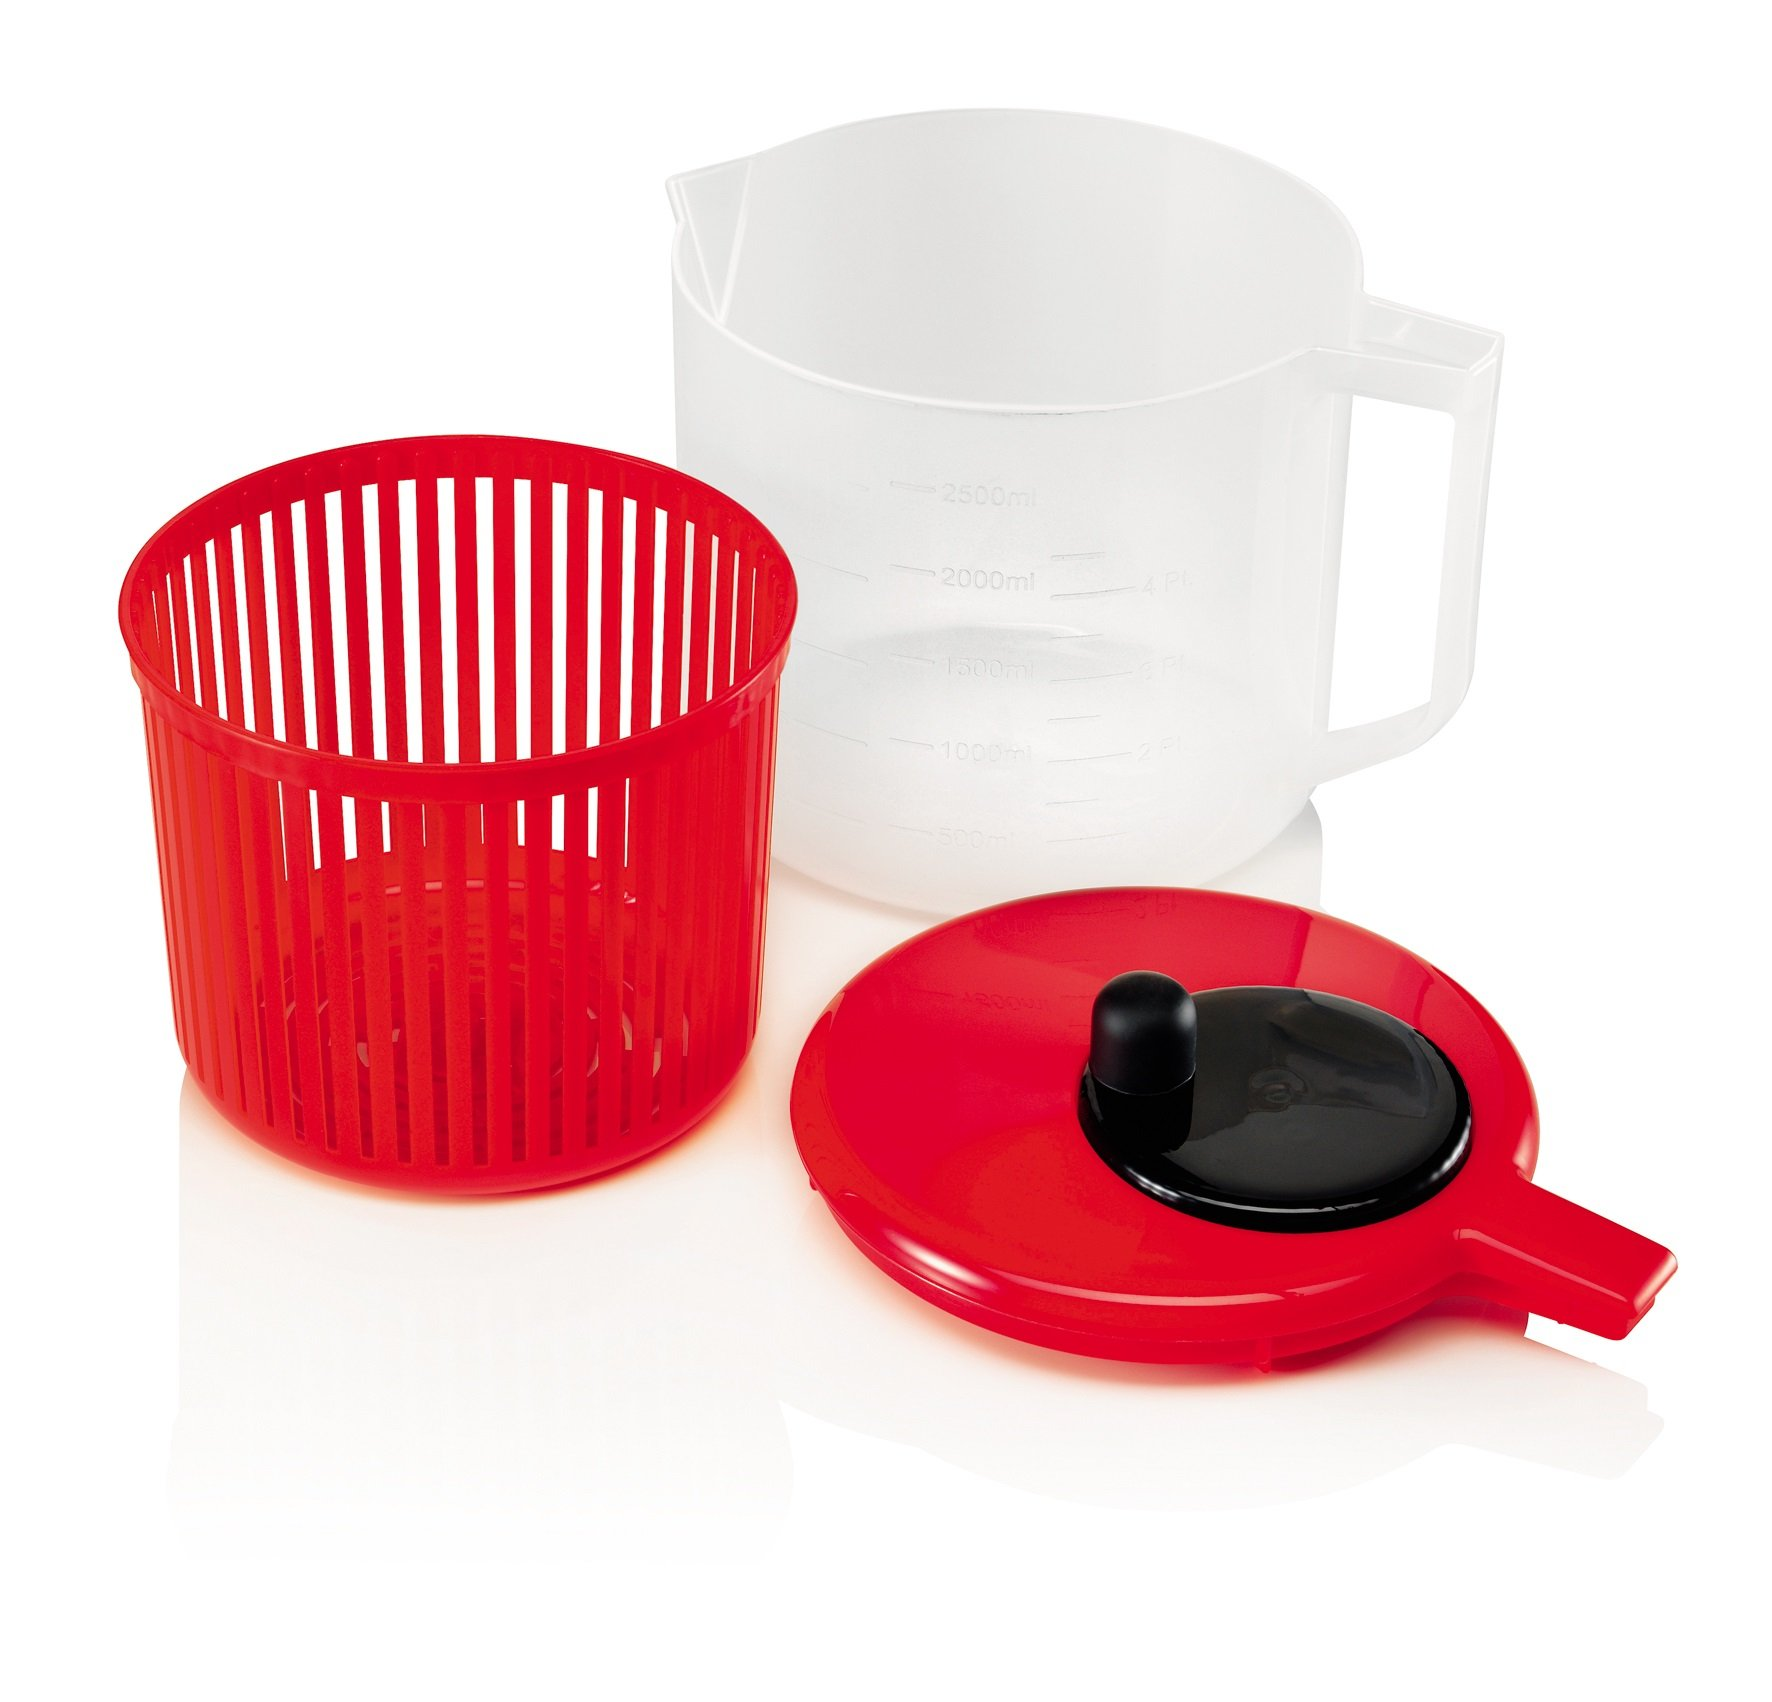 Zeal J259R Salad Spinner, Red by Zeal